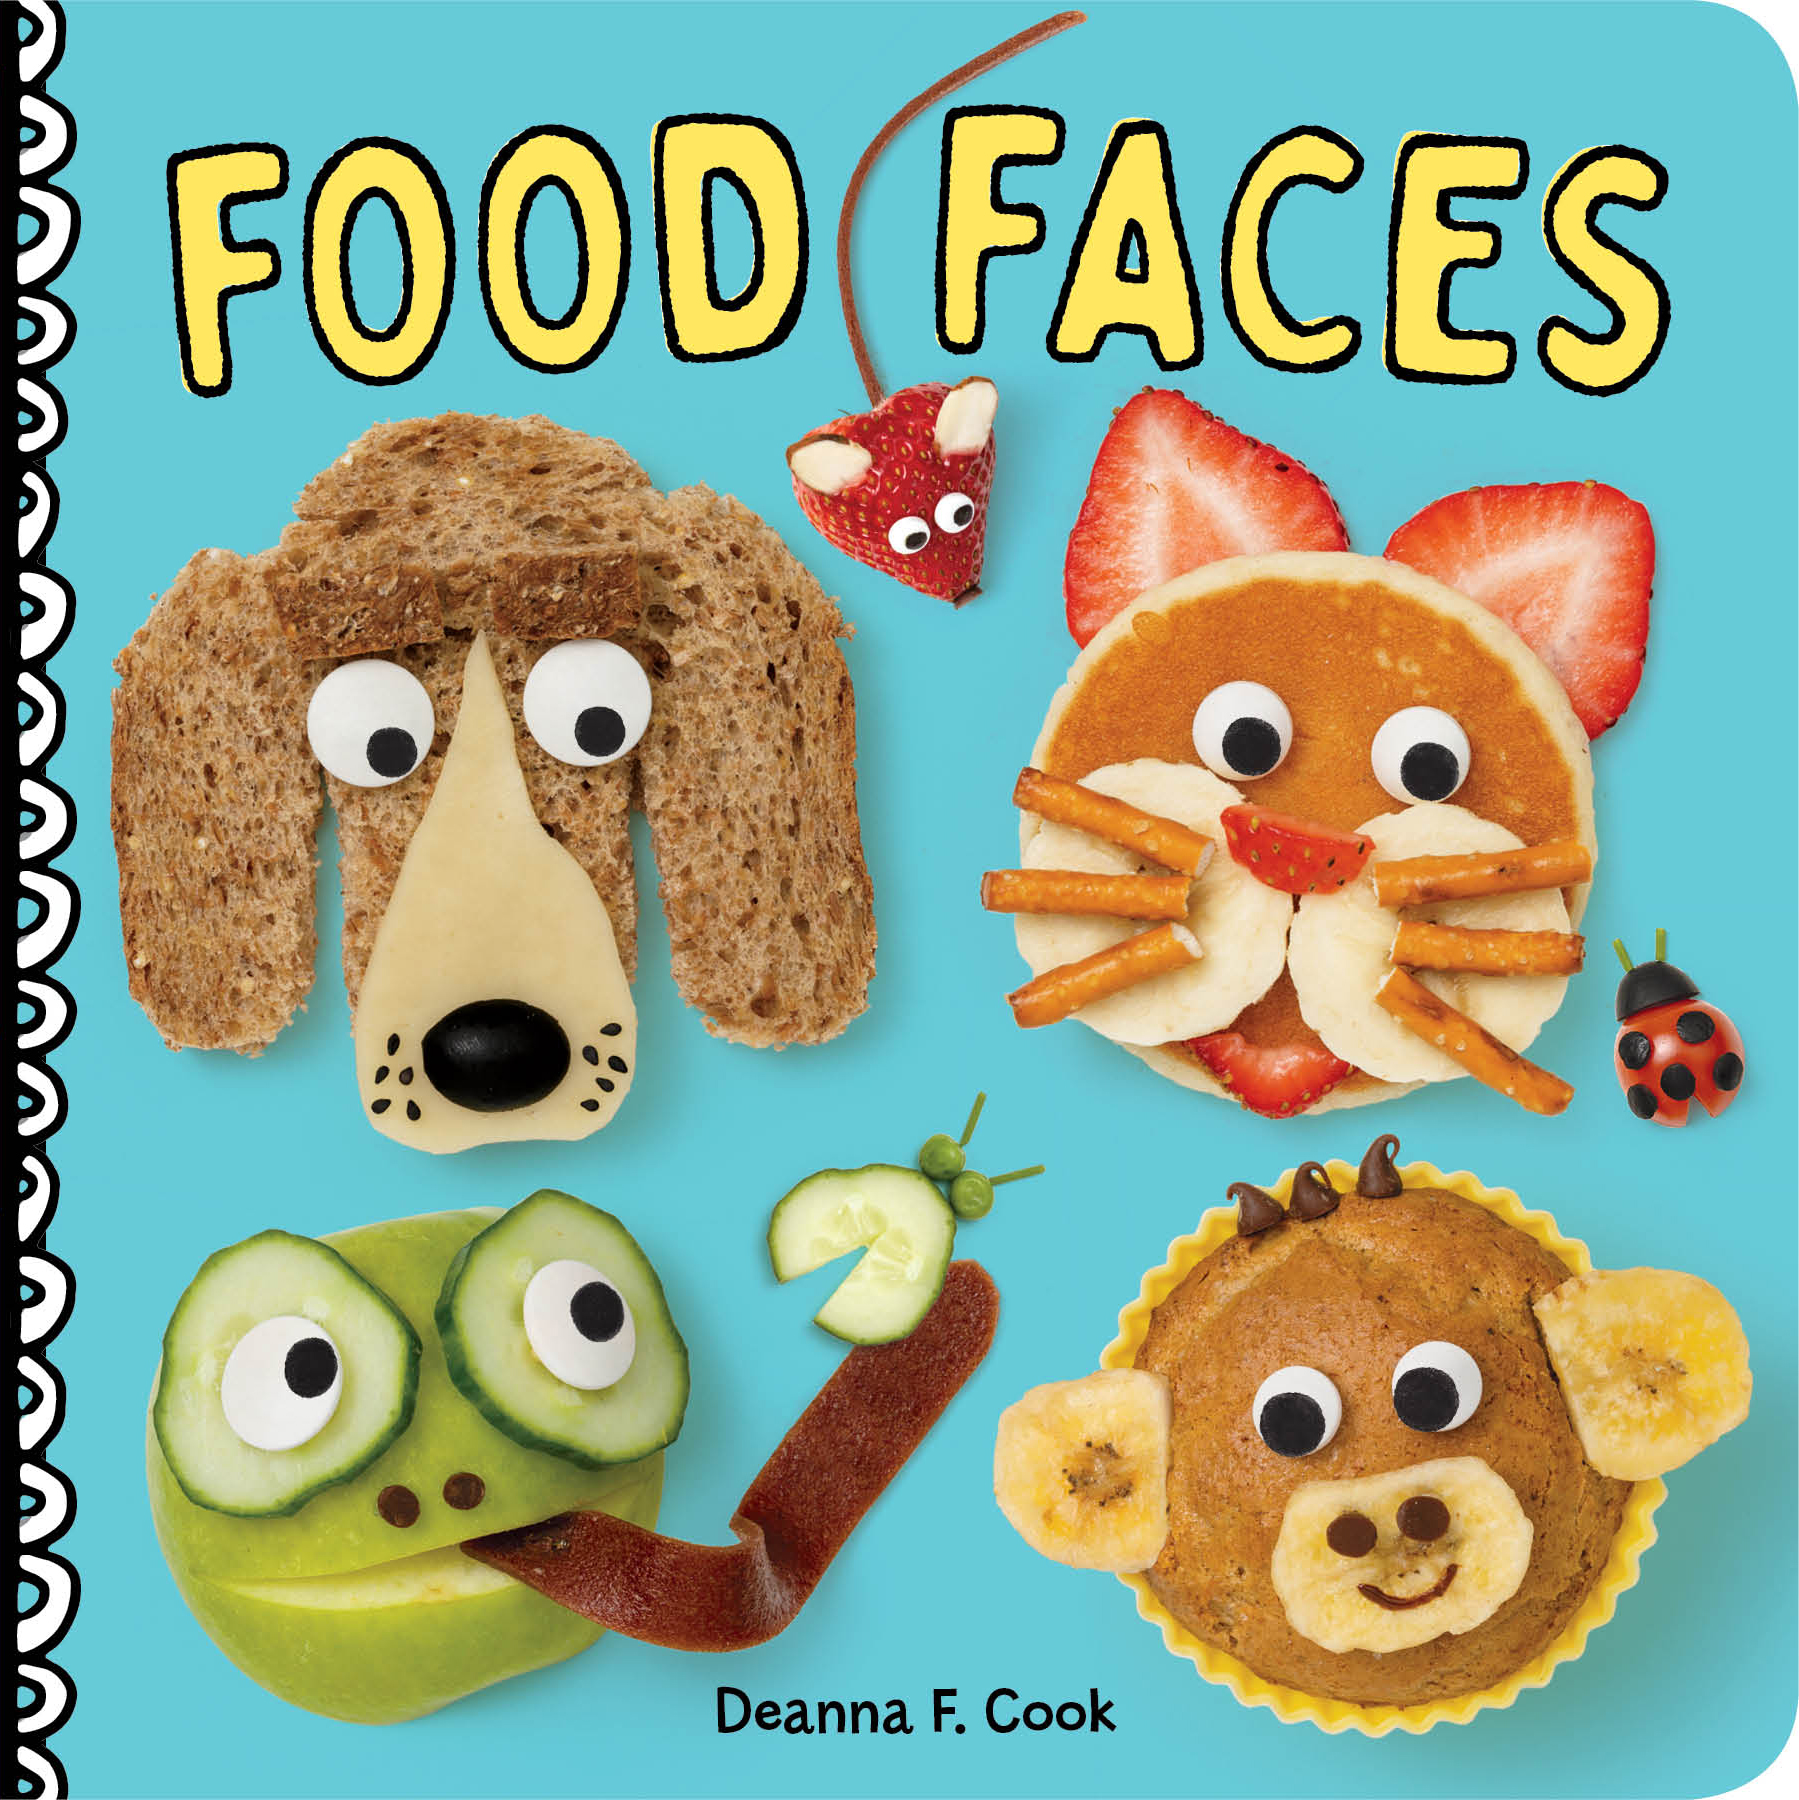 Food Faces A Board Book - Deanna F. Cook